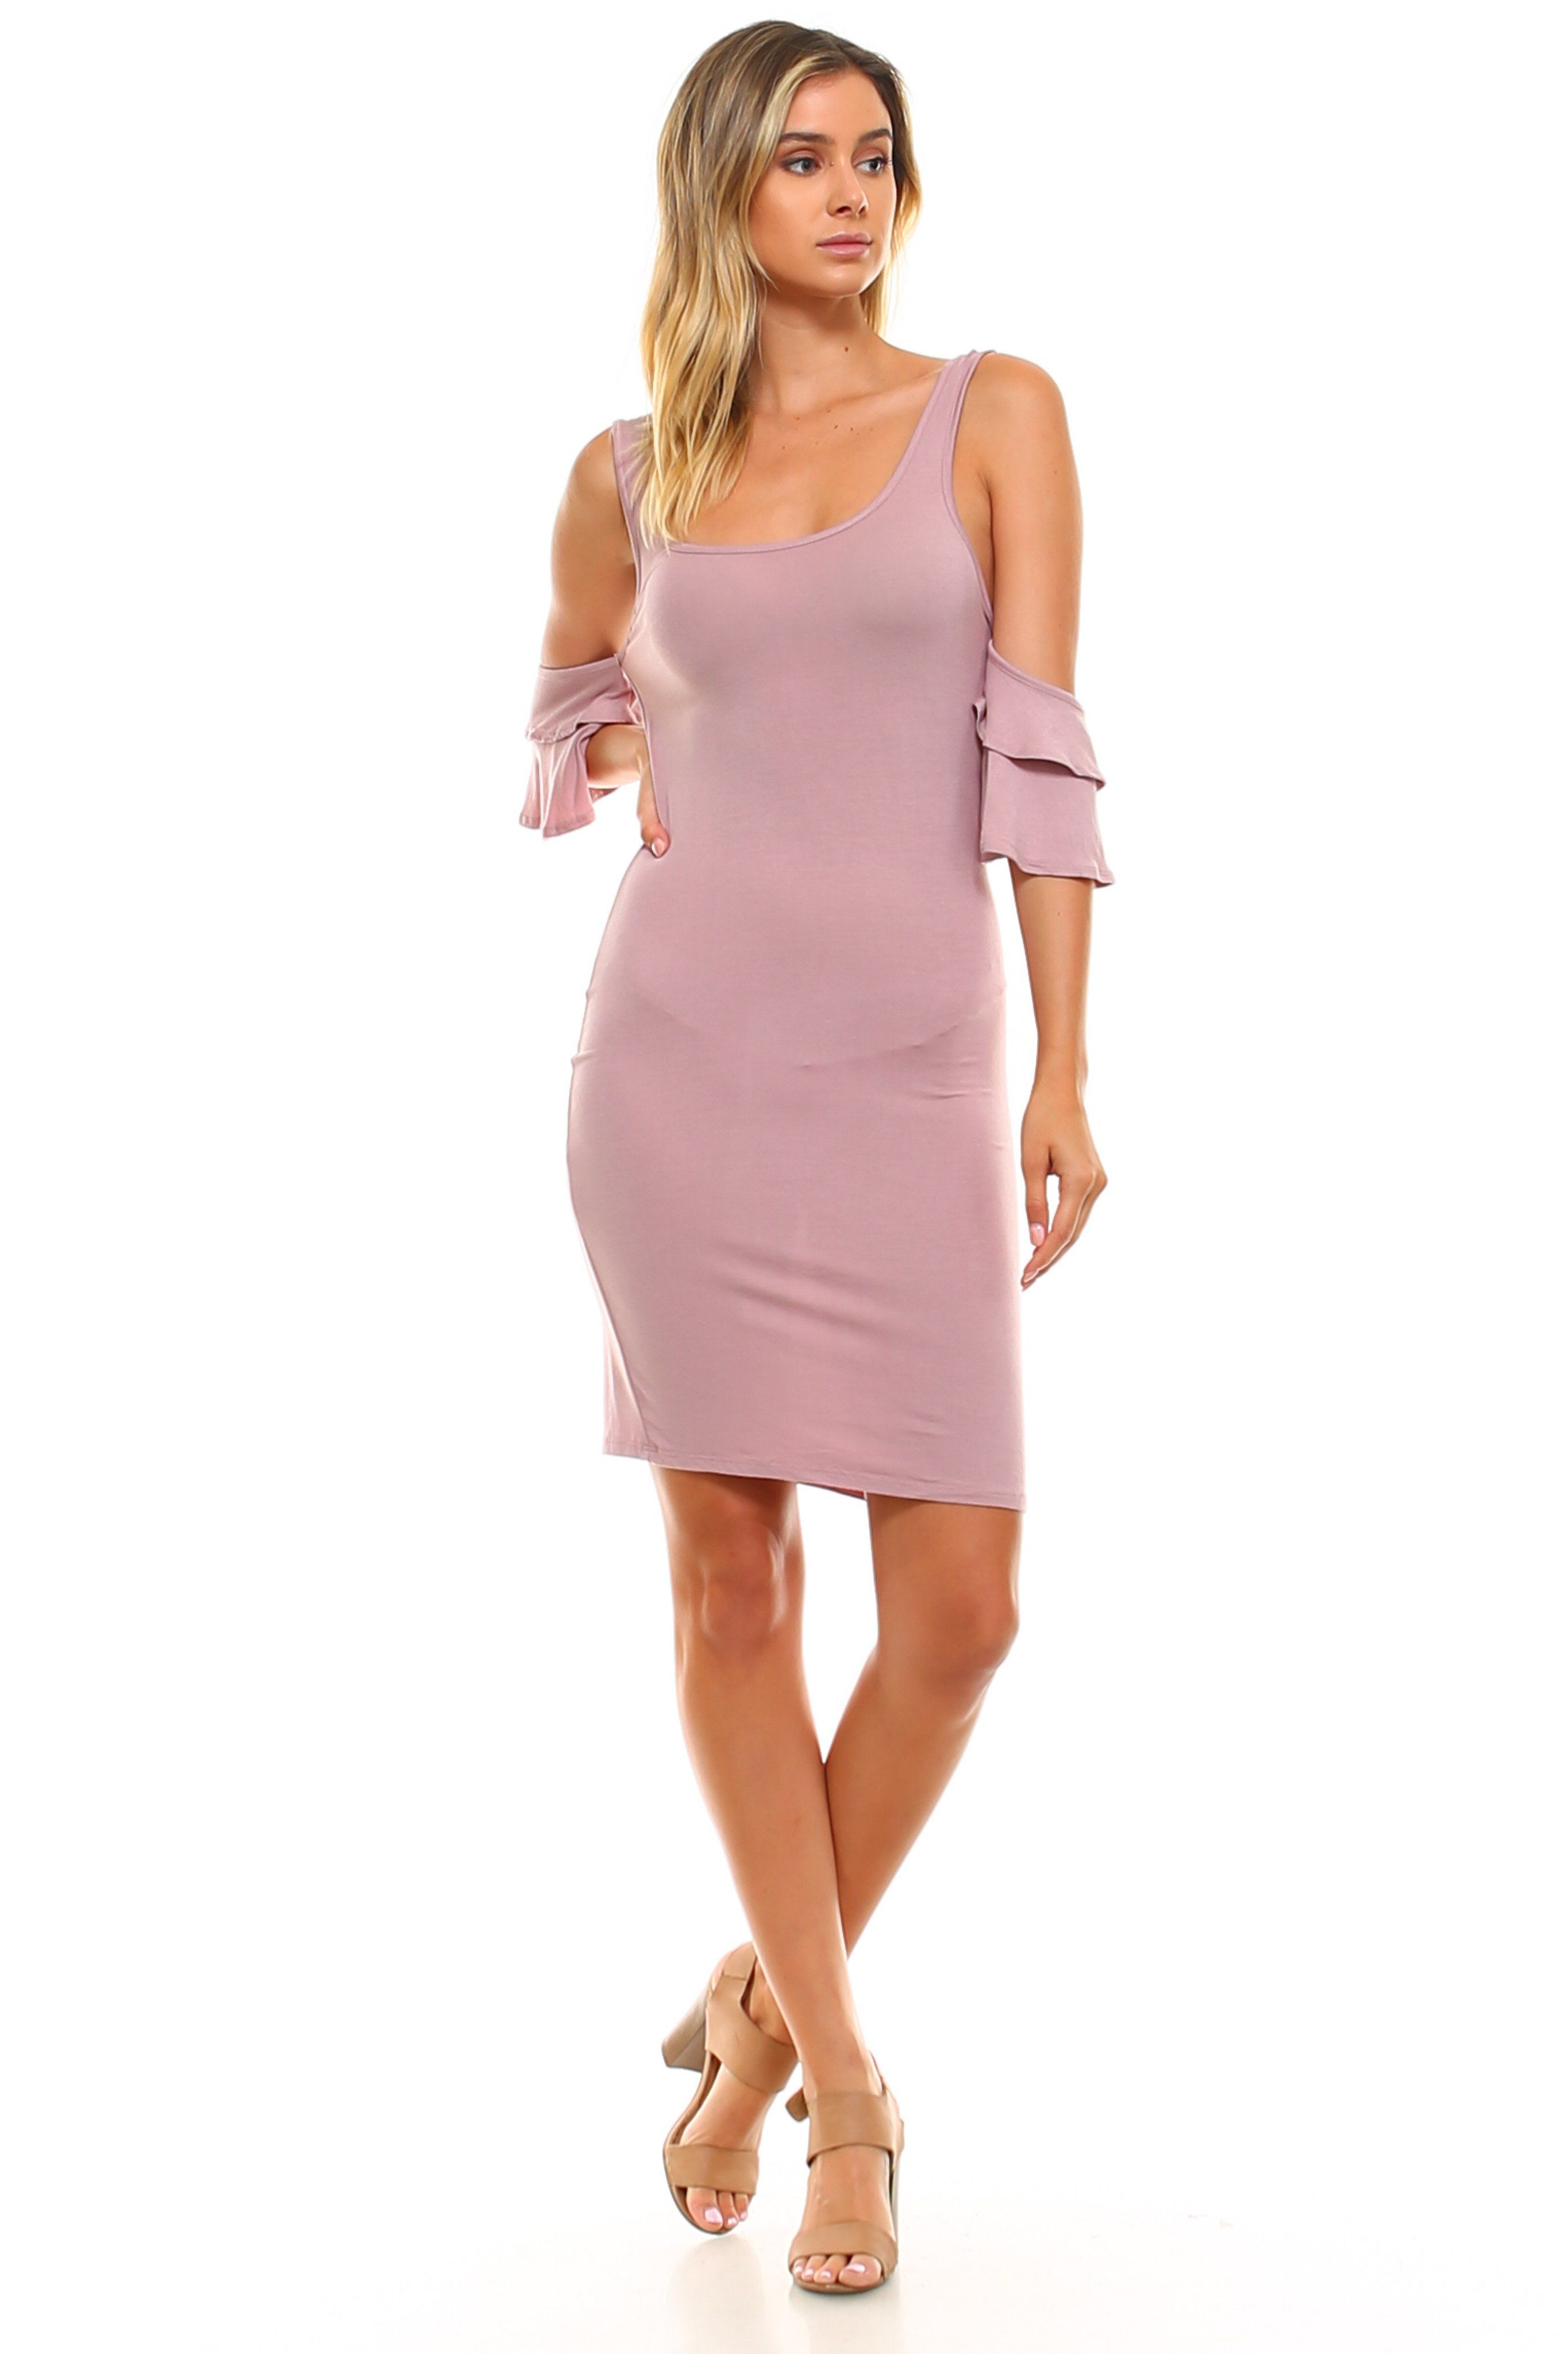 This Tank Dress Features A Cold Shoulder Style With Ruffle